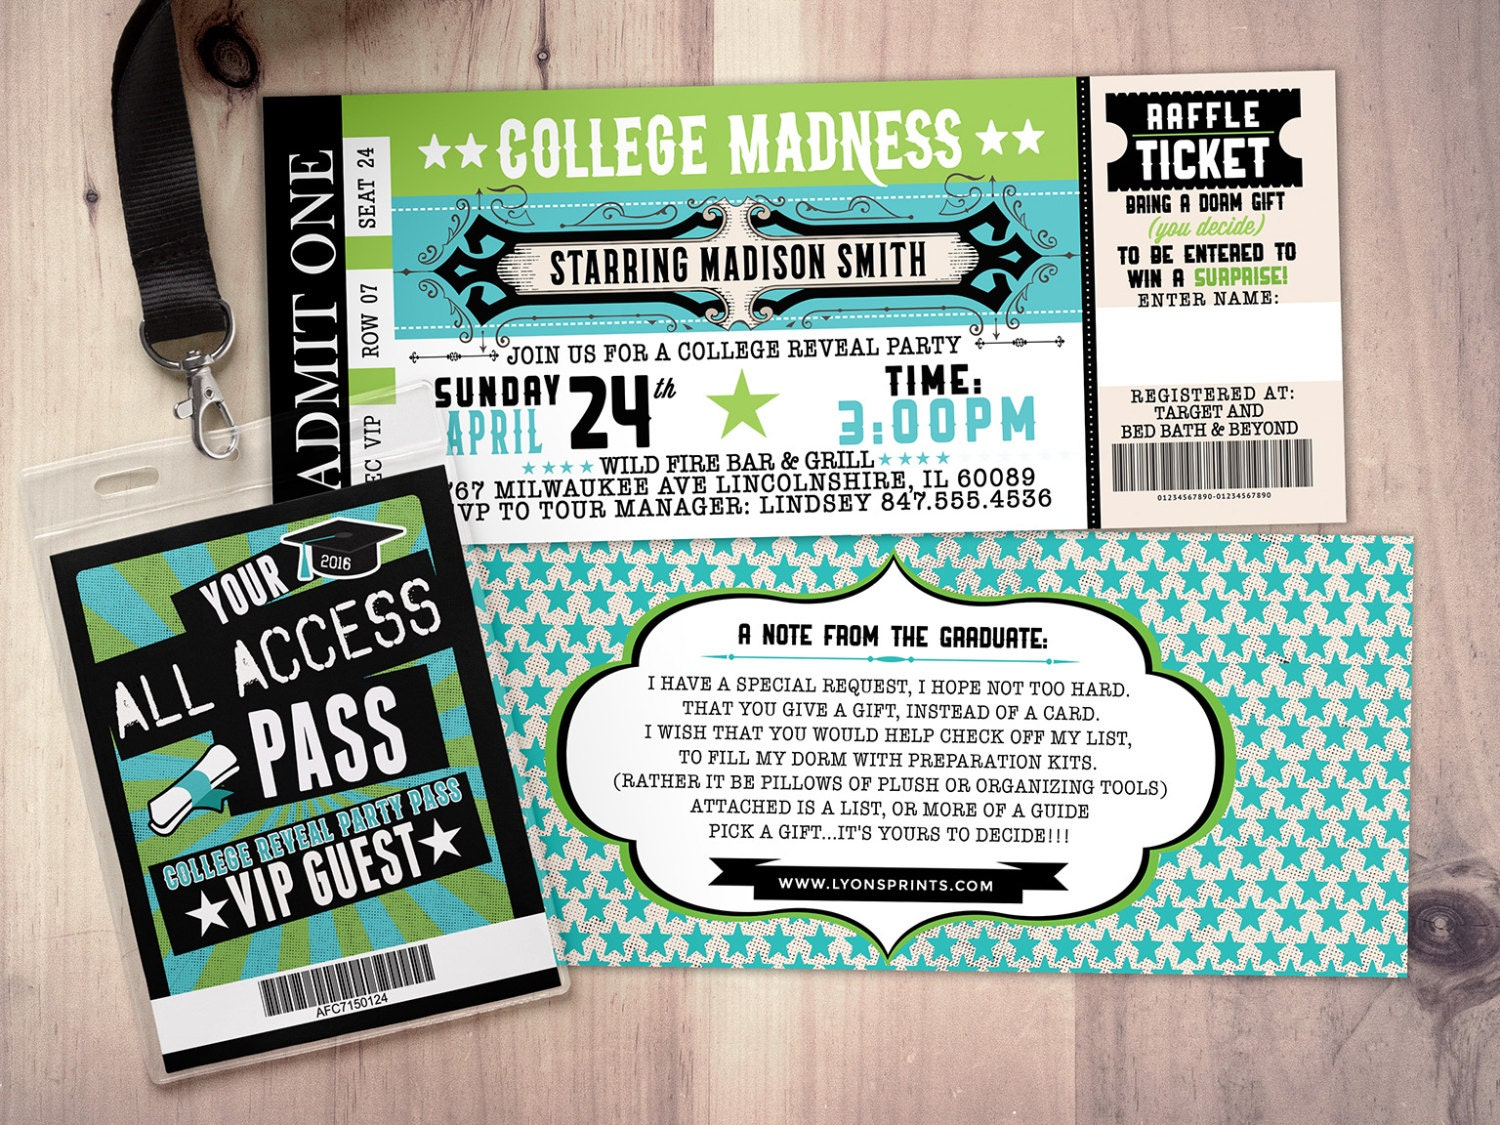 College reveal party, Concert ticket, graduation party invitation ...